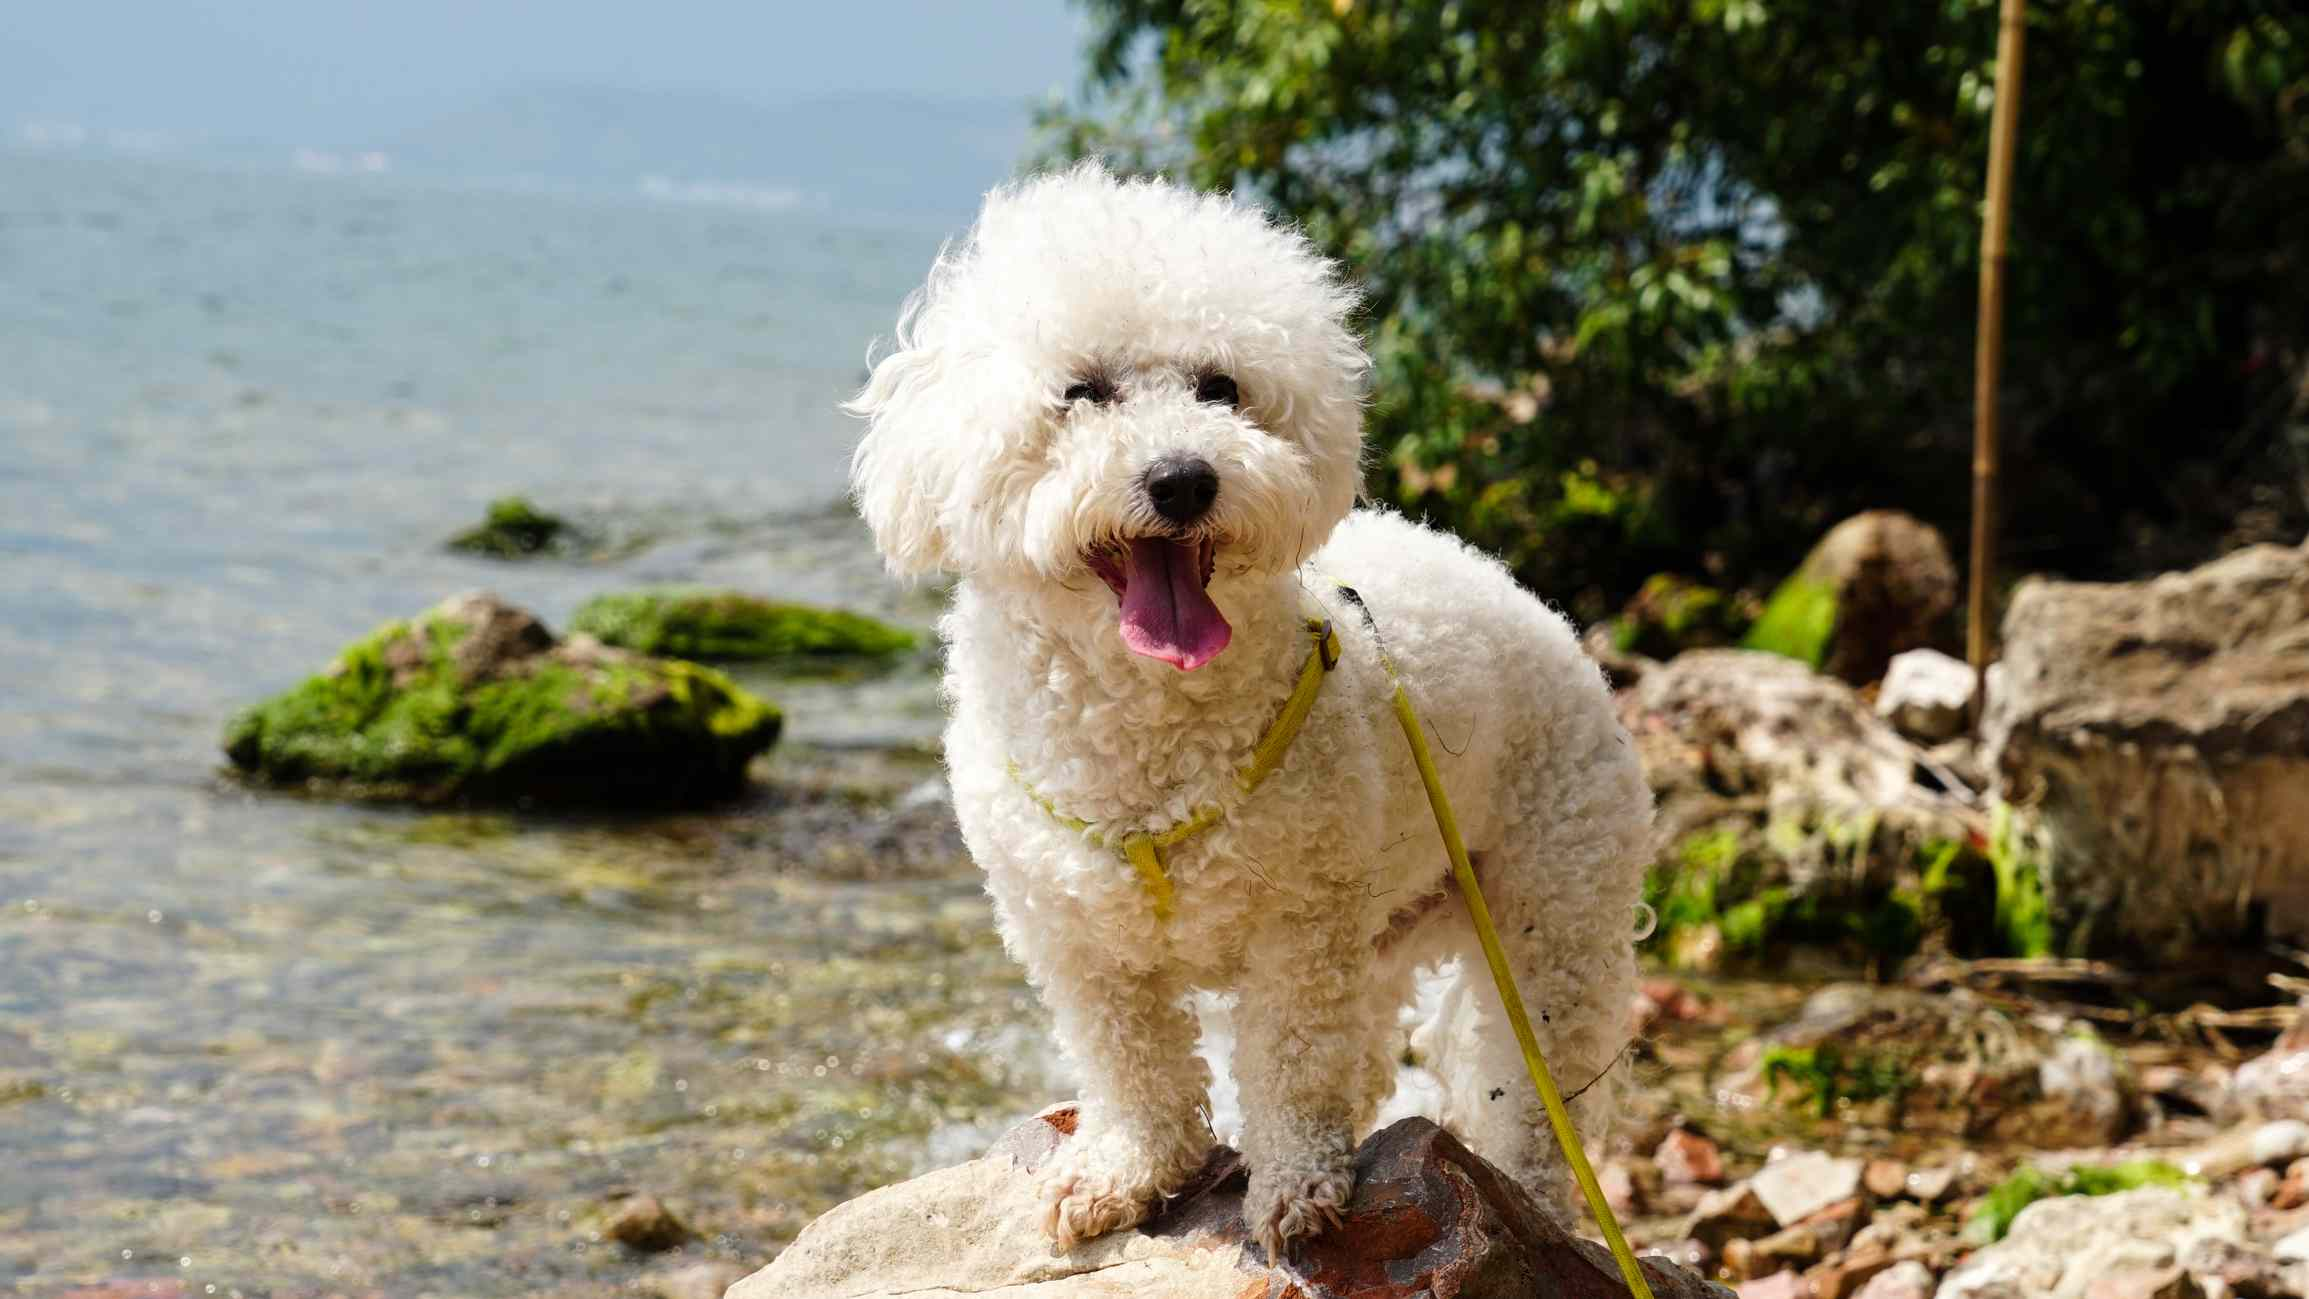 white bichon frise with its mouth open standing on a rock near a body of water